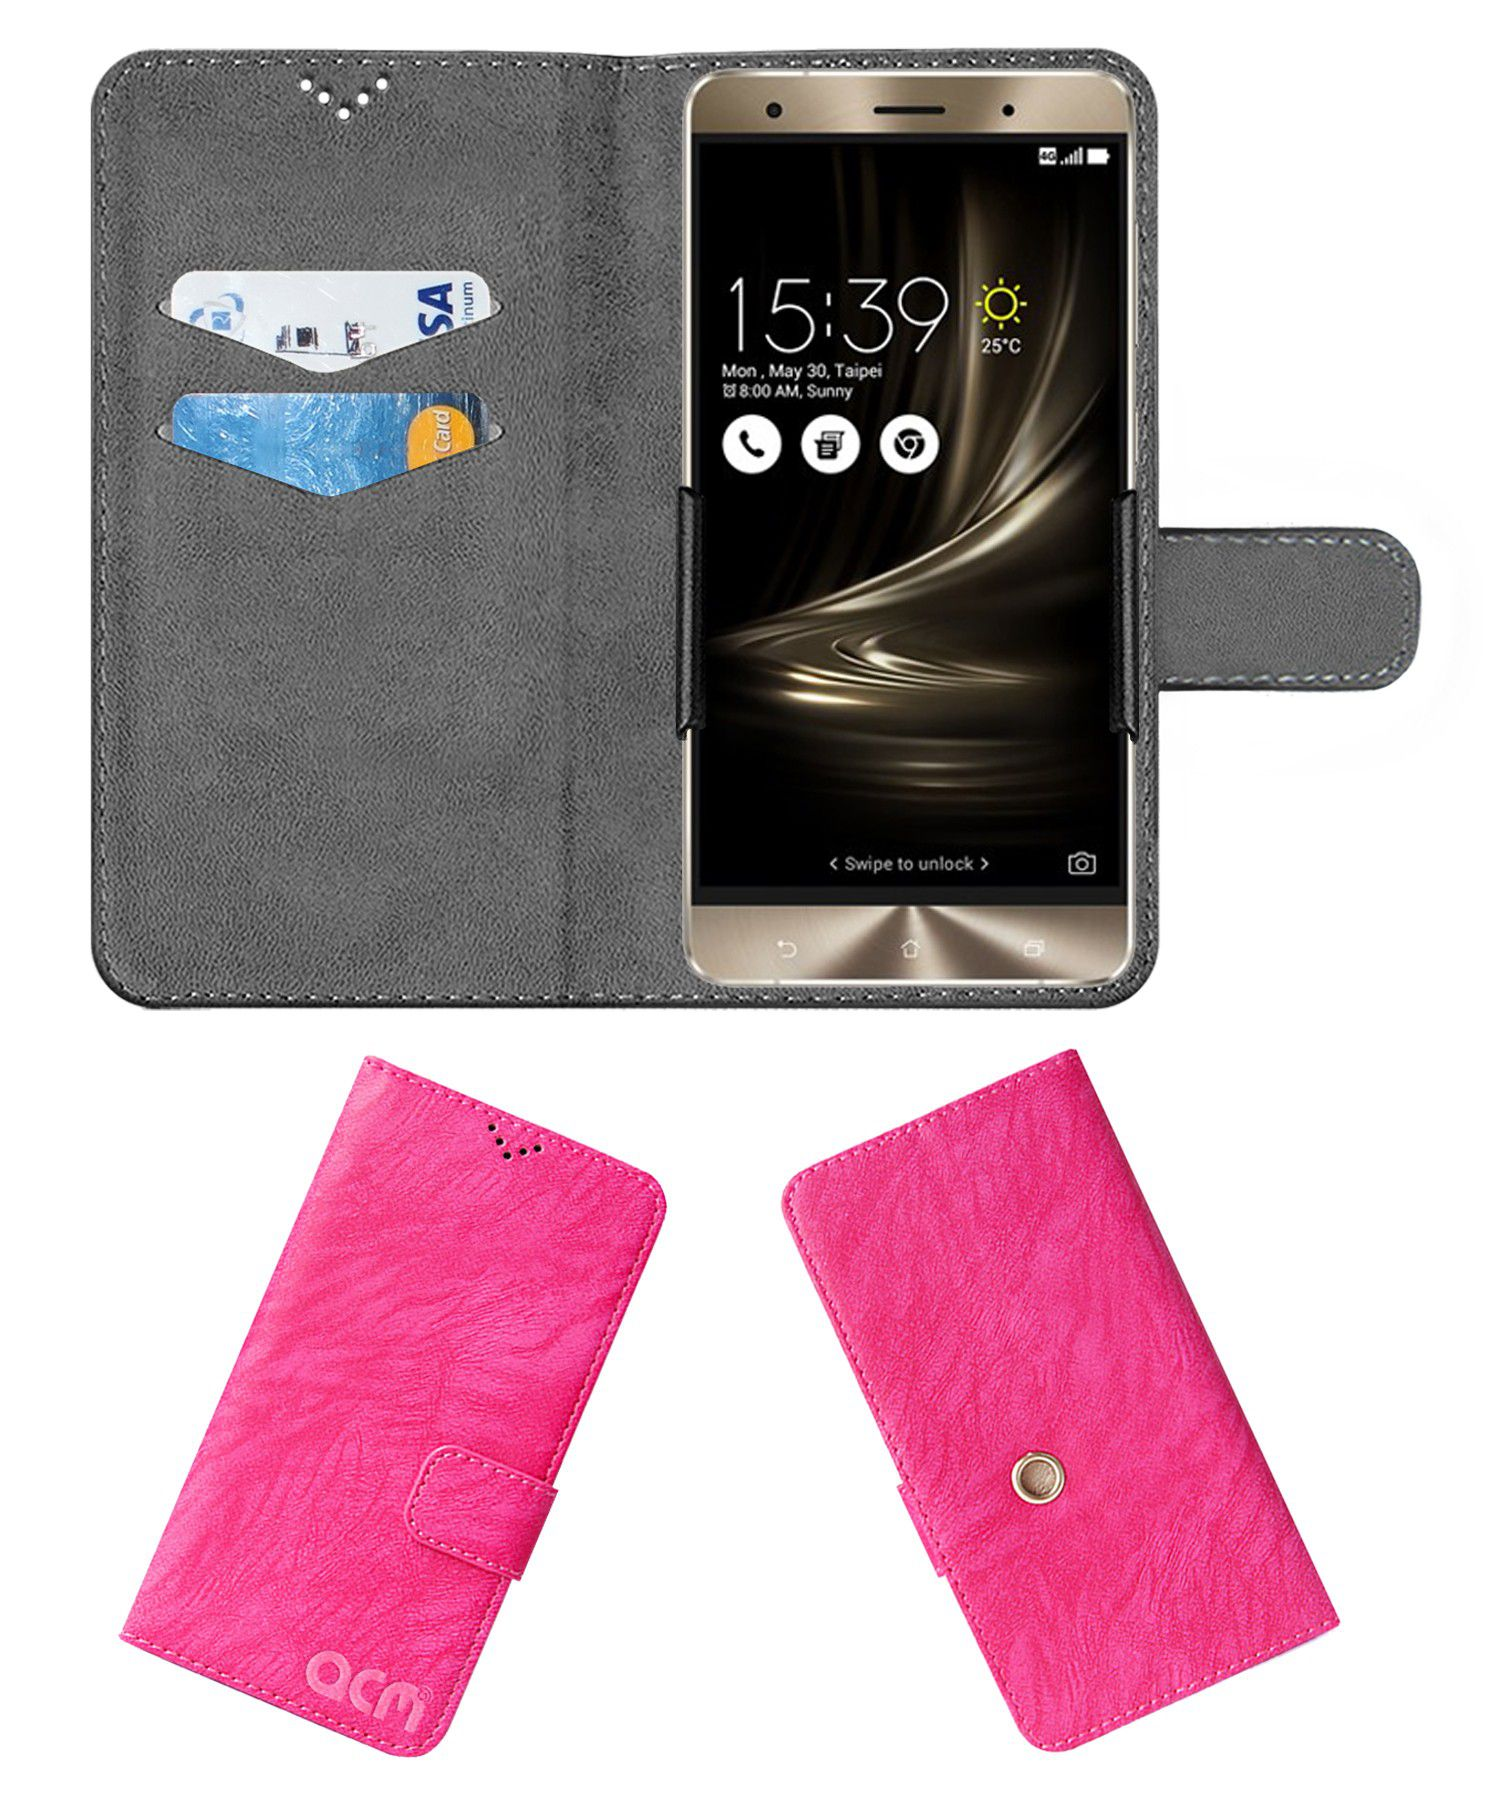 Asus Zenfone 2 Deluxe Flip Cover by ACM - Pink Clip holder to hold your mobile securely